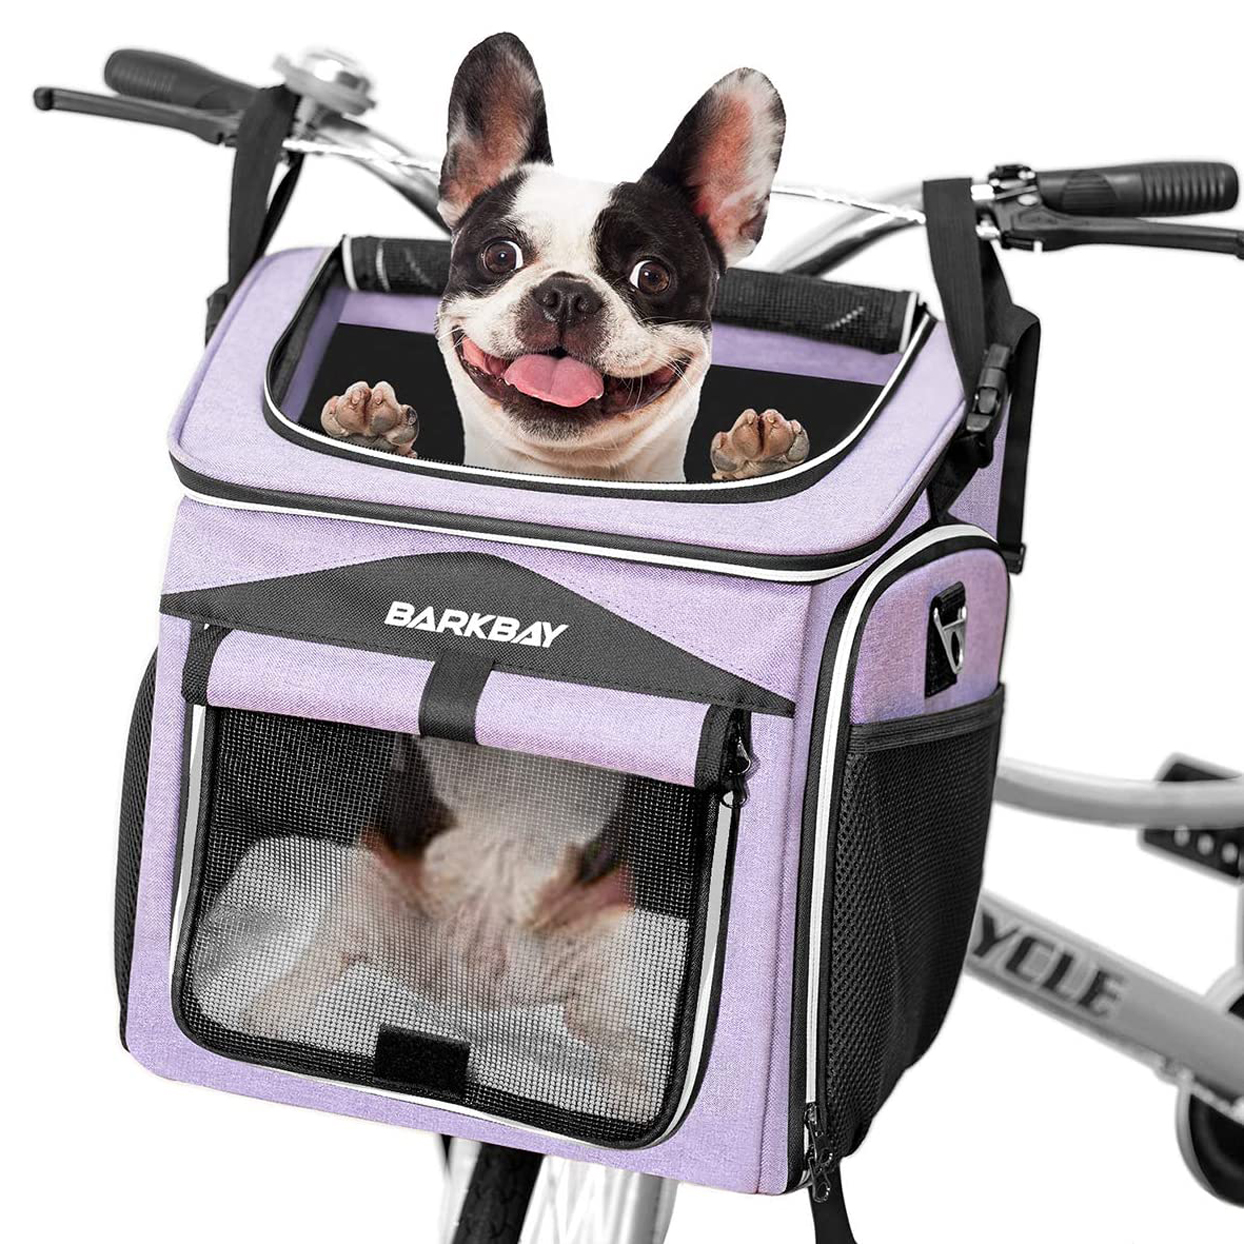 barkbay-dog-bike-basket-carrier